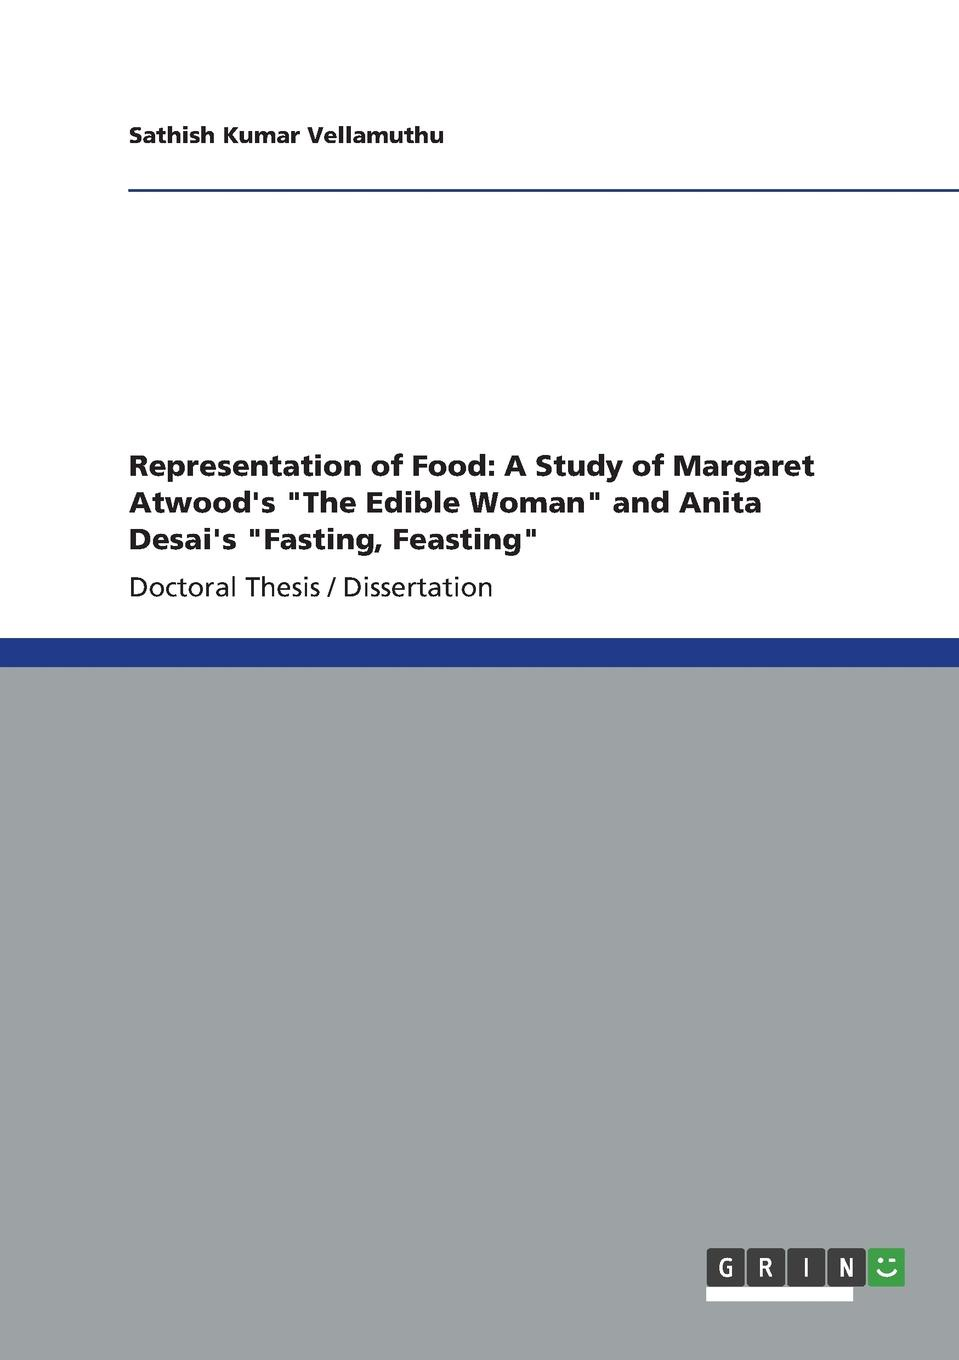 Sathish Kumar Vellamuthu Representation of Food. A Study of Margaret Atwood.s The Edible Woman and Anita Desai.s Fasting, Feasting edible science